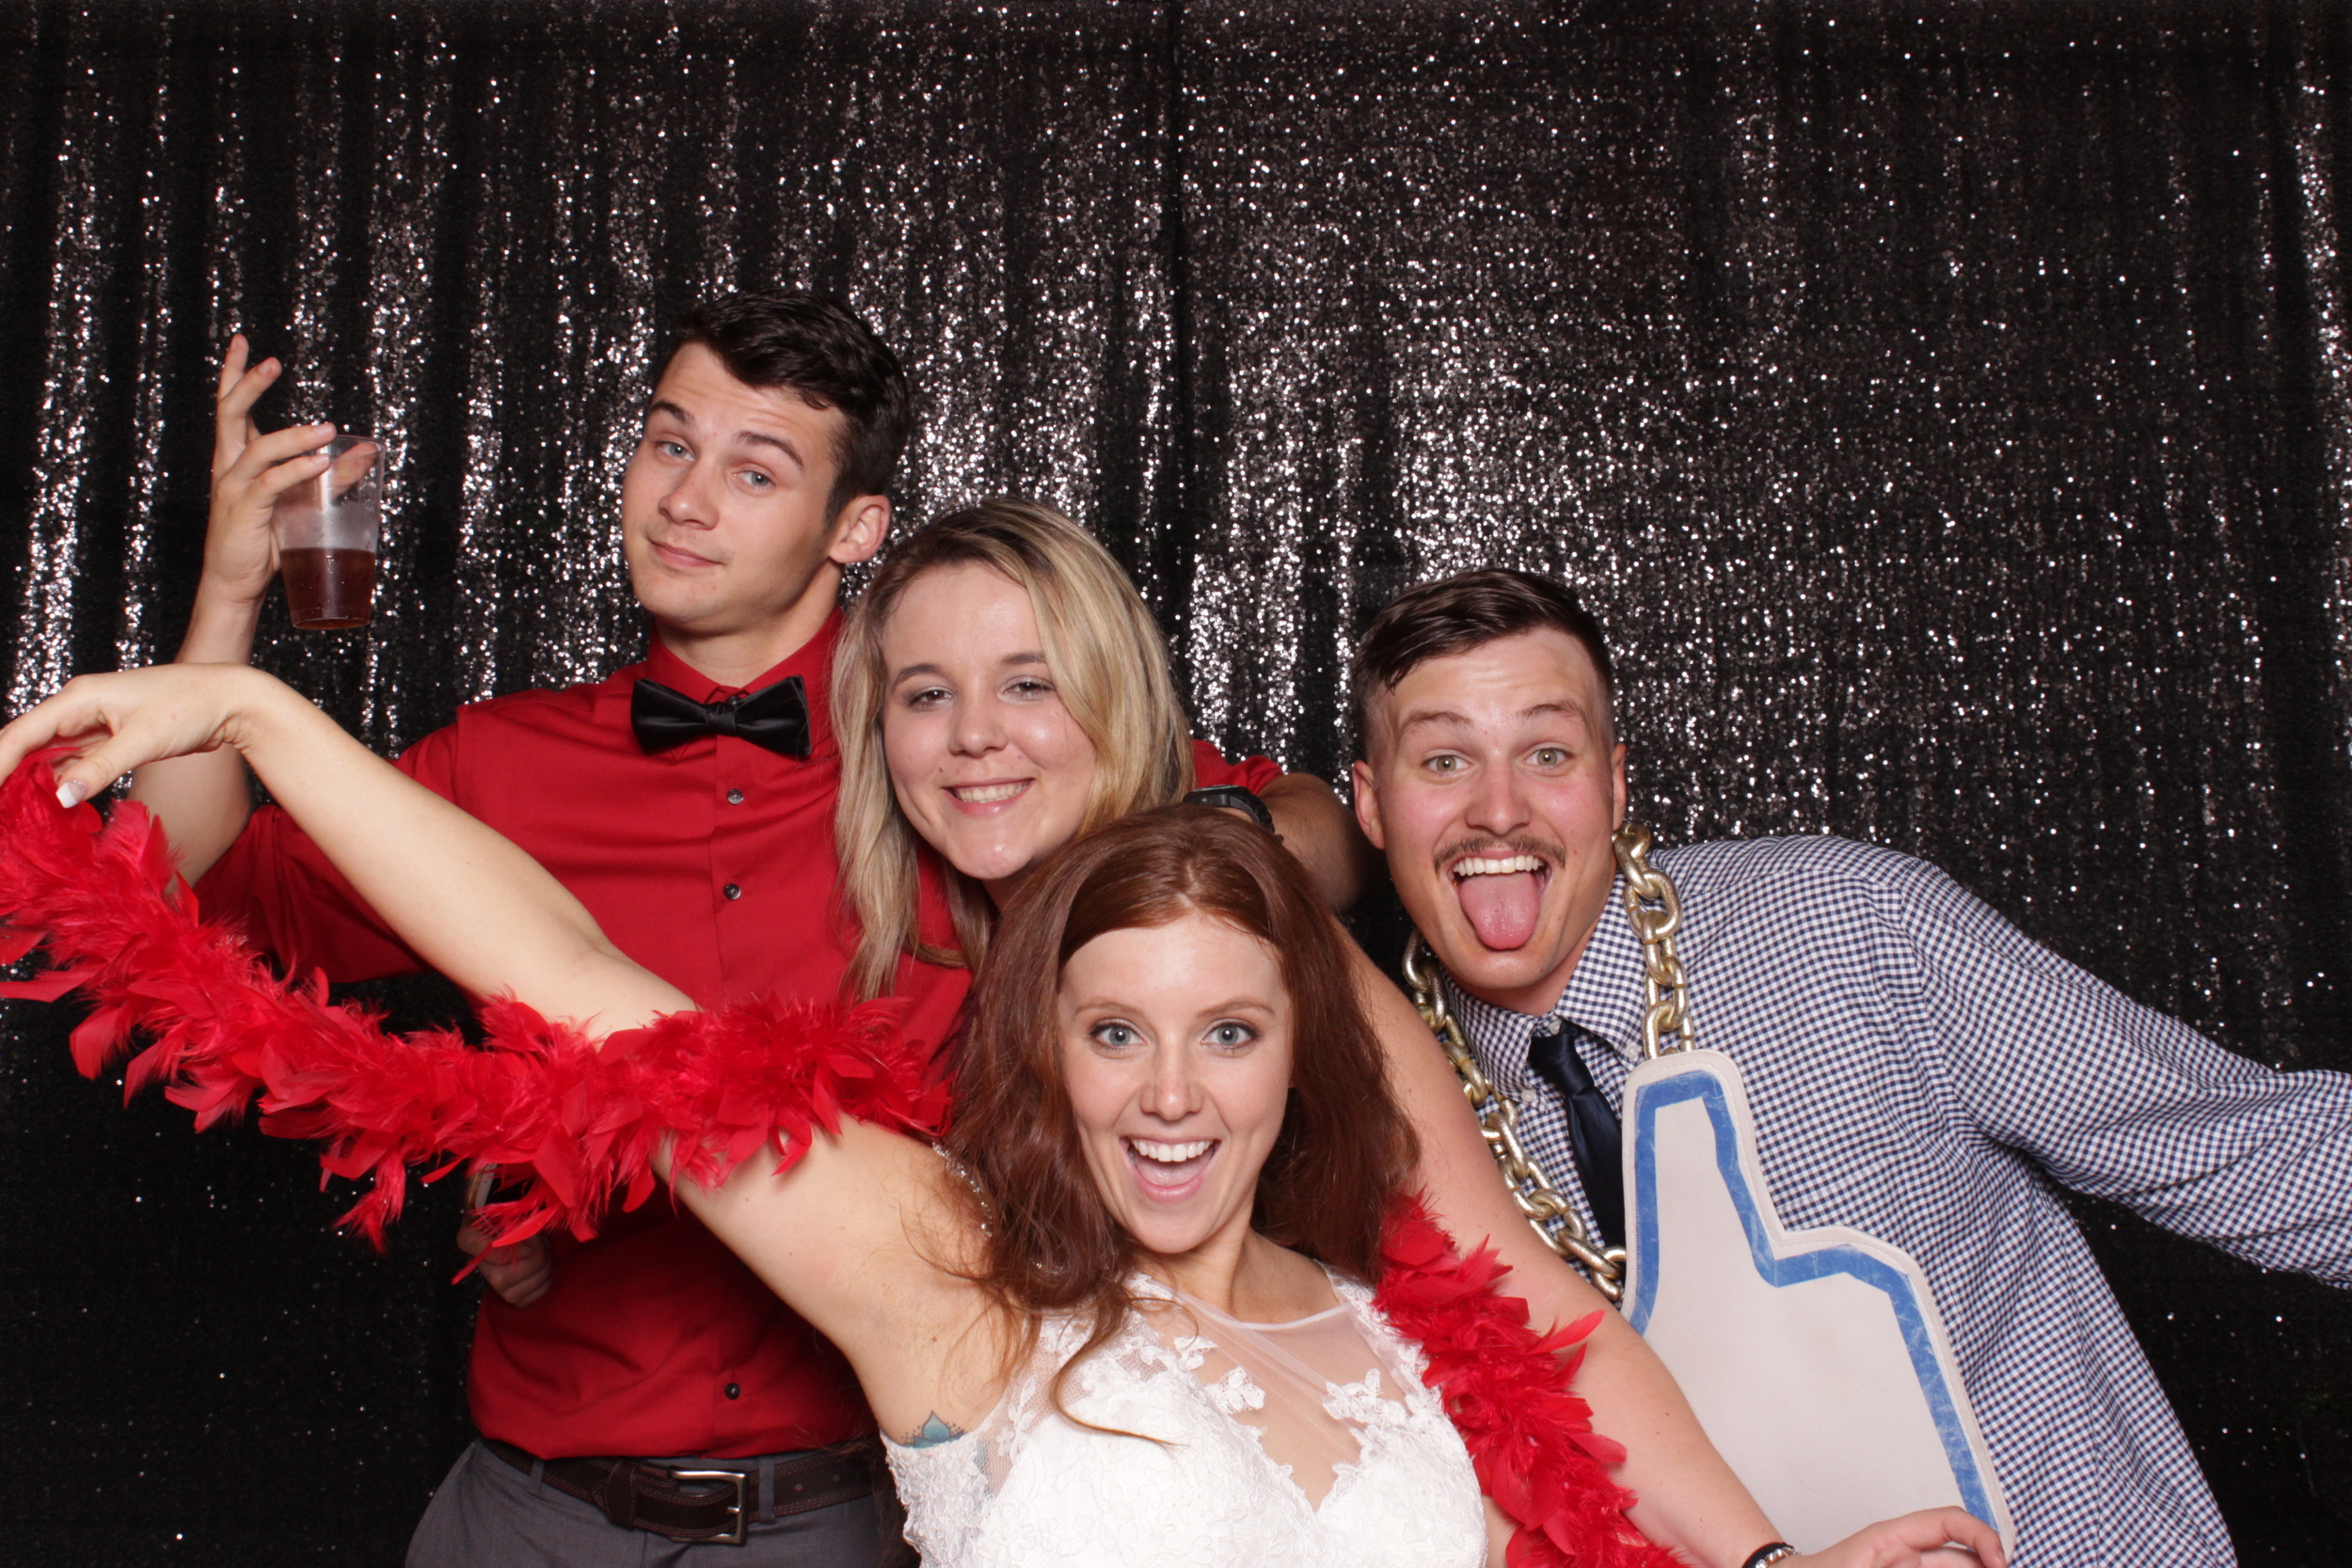 chico-open-air-photo-booth-style-bride-awesome